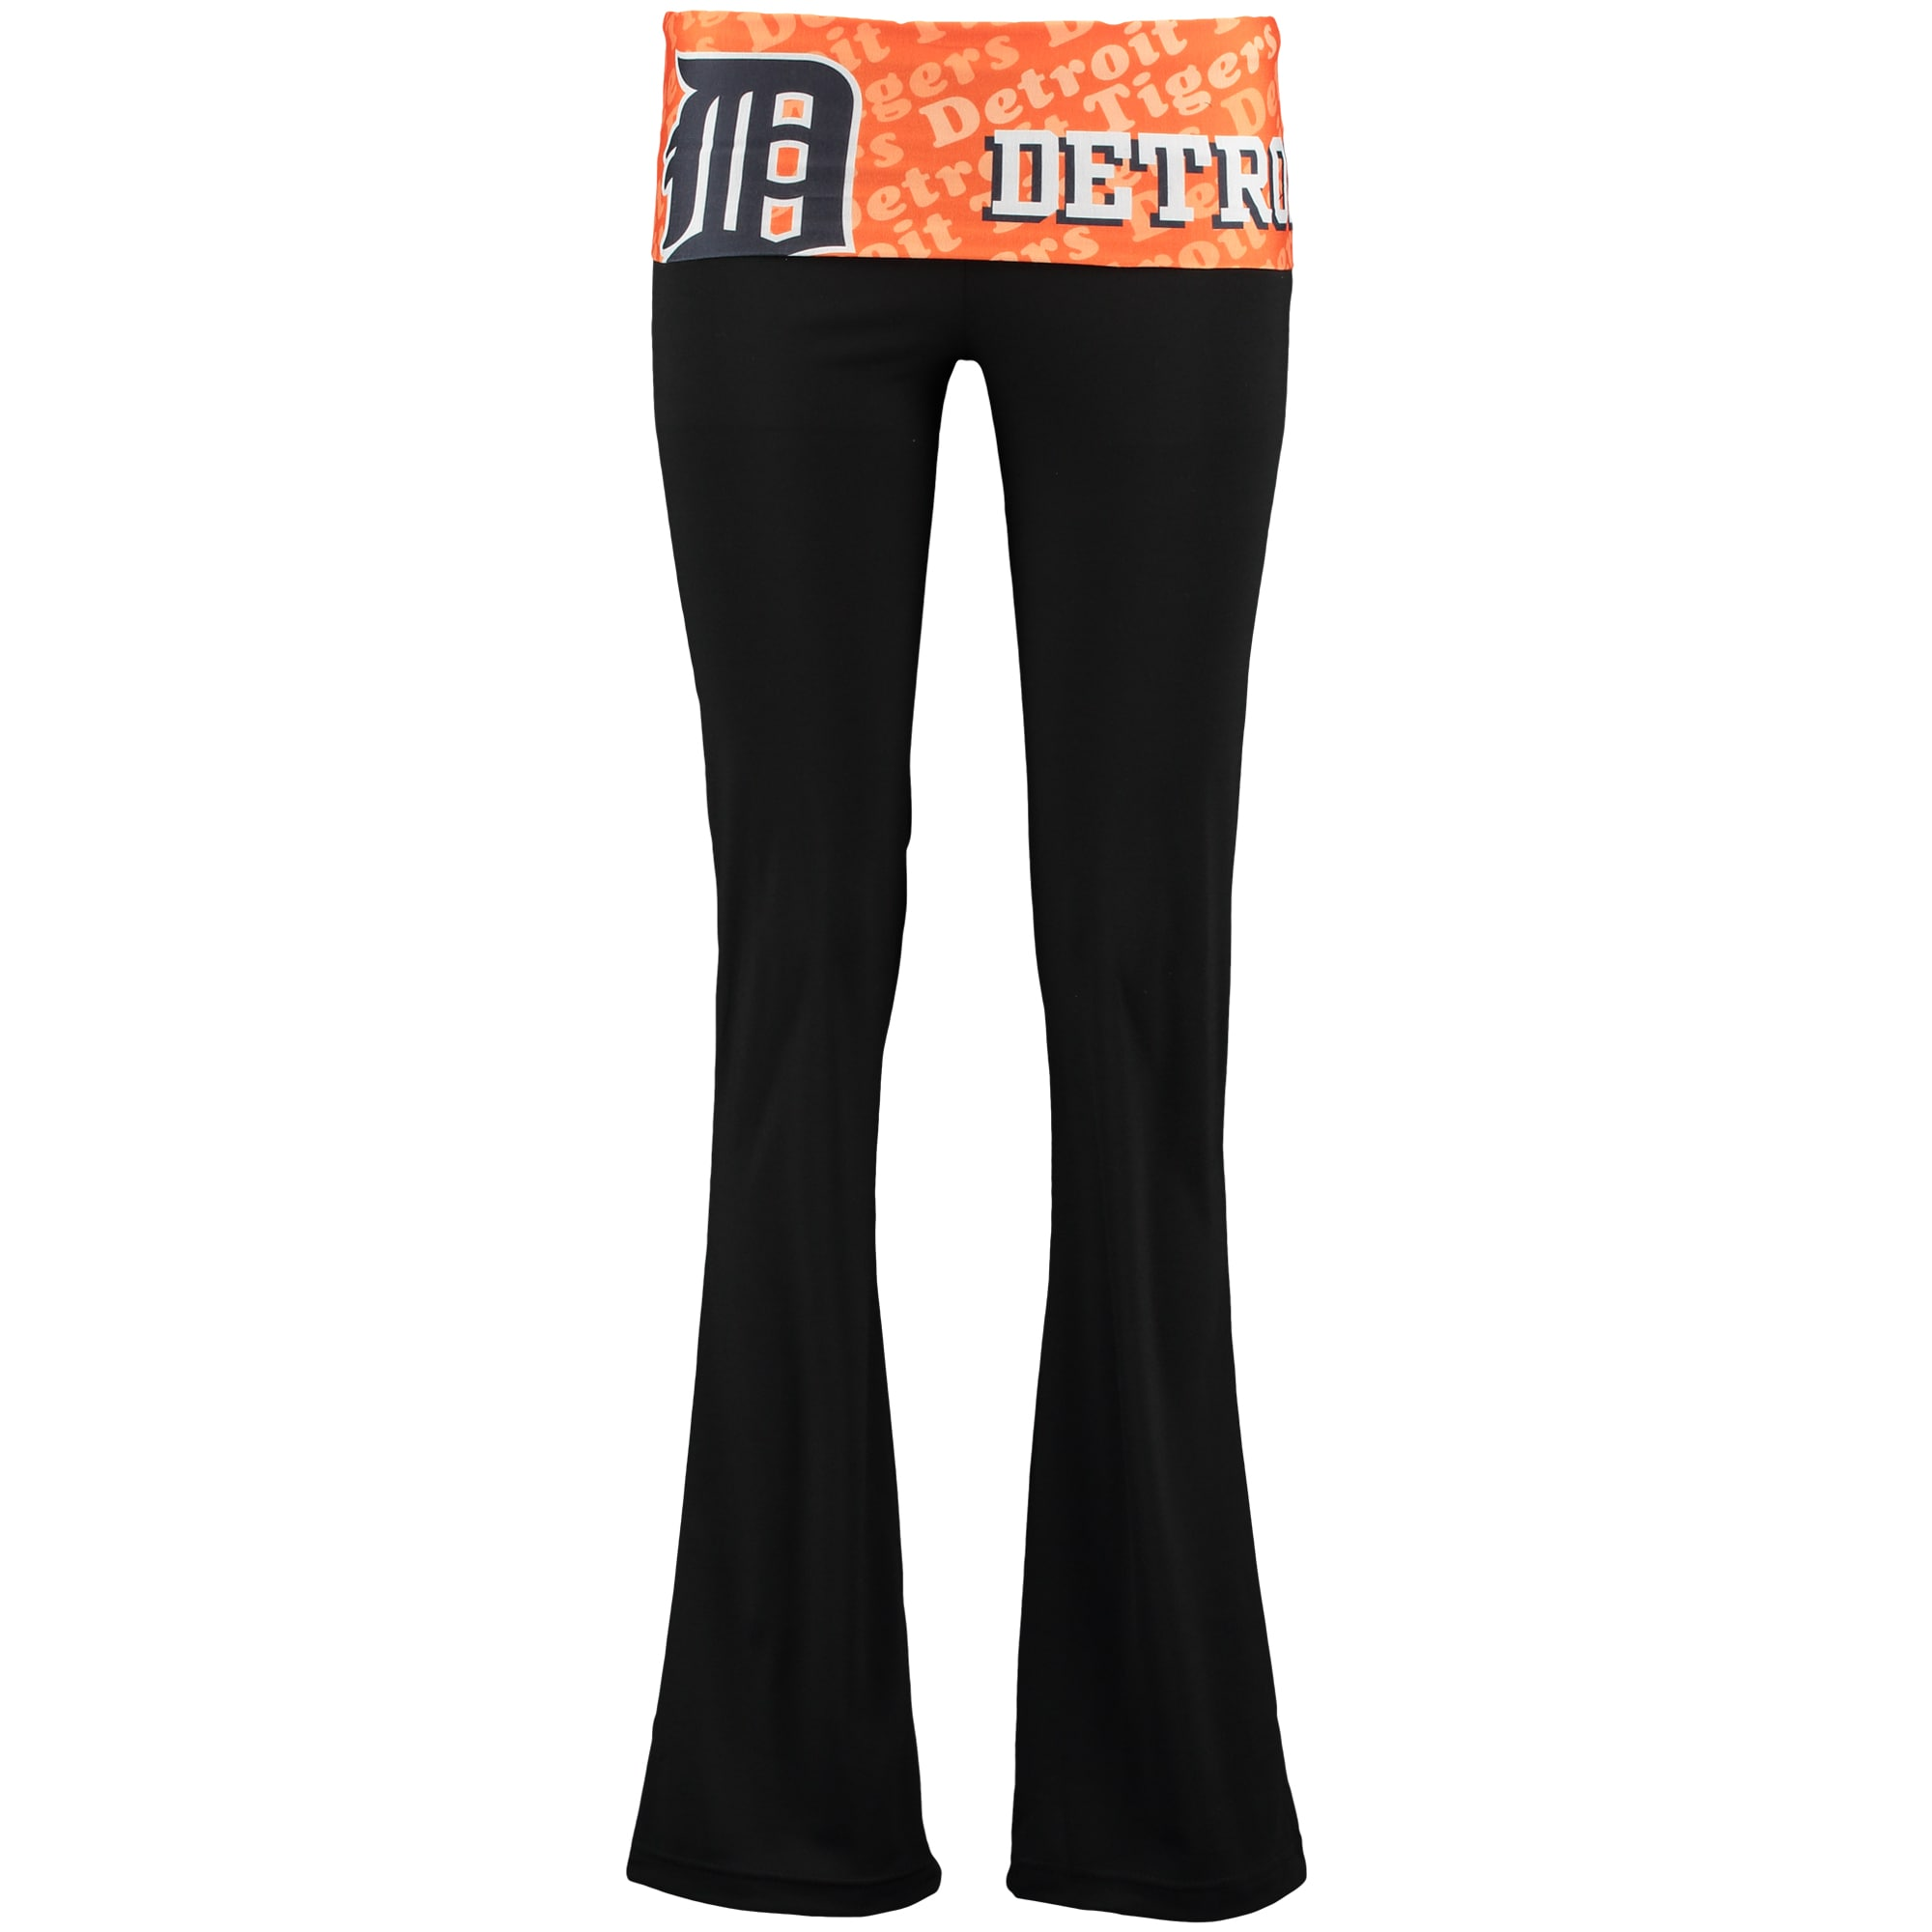 Dennys Check Catering Trouser All Sizes XS-3X